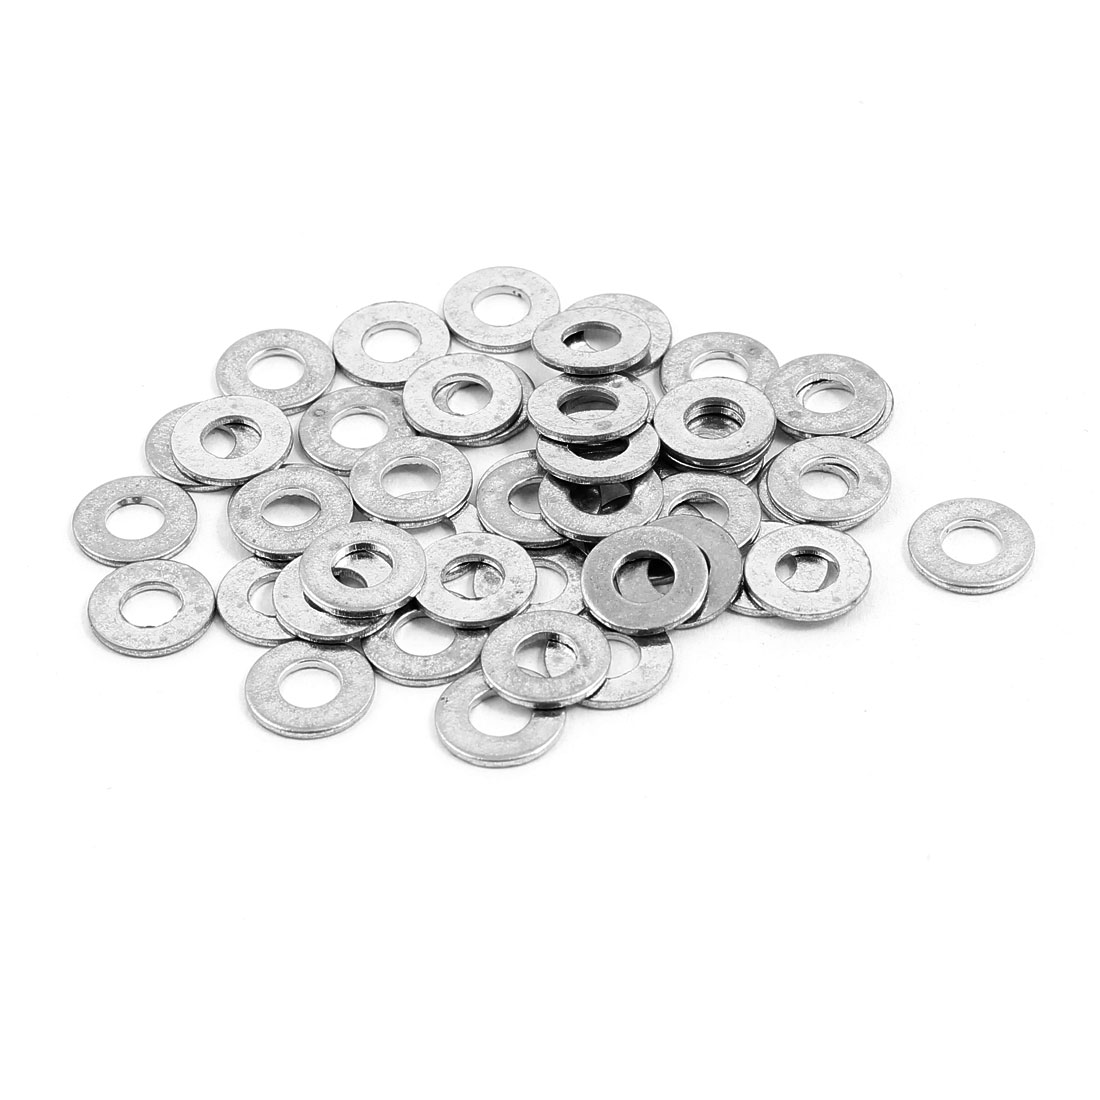 4x9mm Stainless Steel Flat Washer Plain Spacer Gasket Fastener for Screw Bolt 50pcs